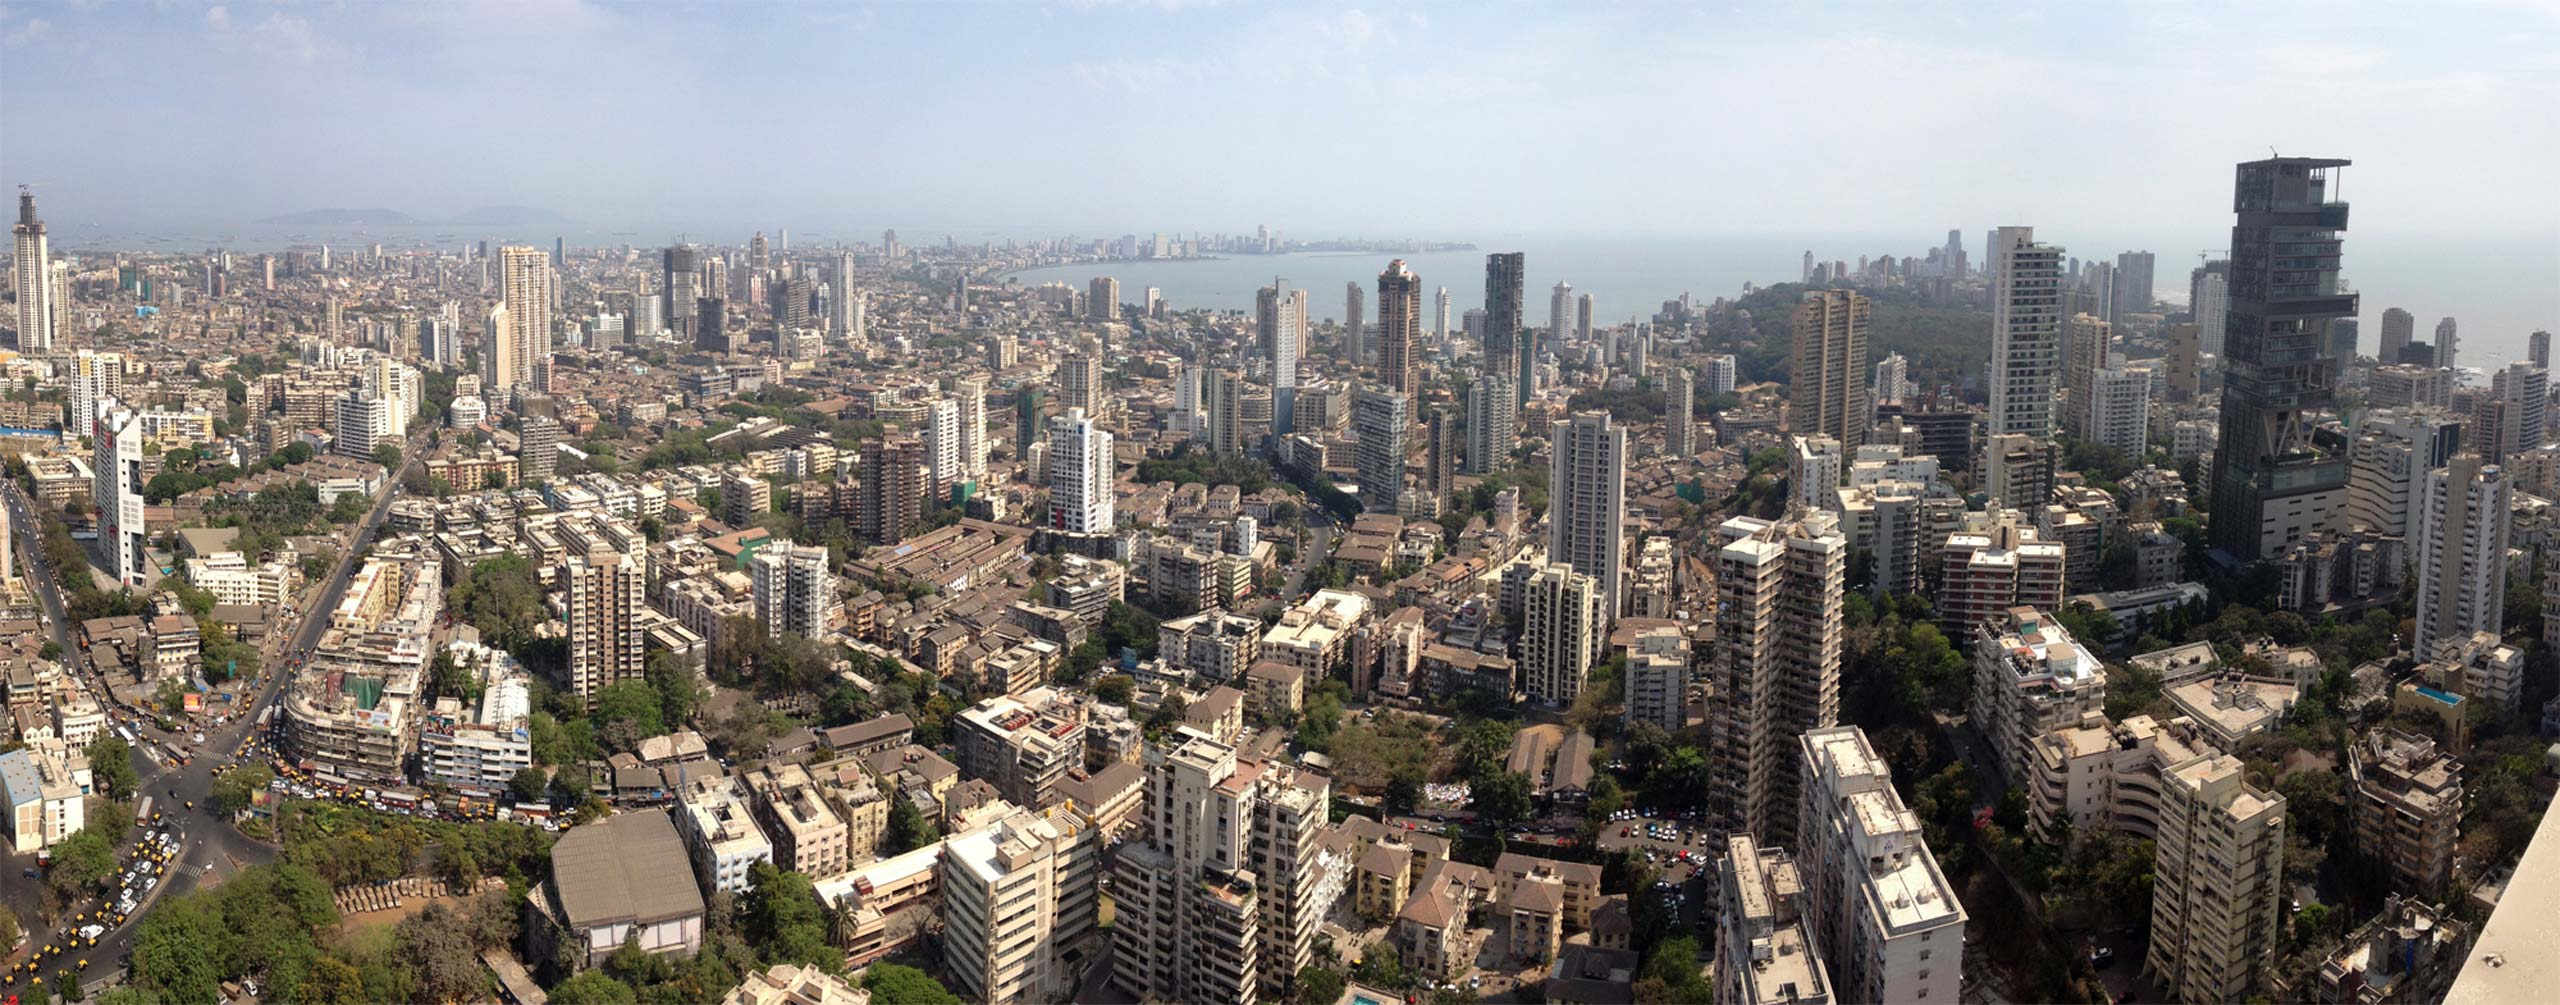 South Mumbai skyline